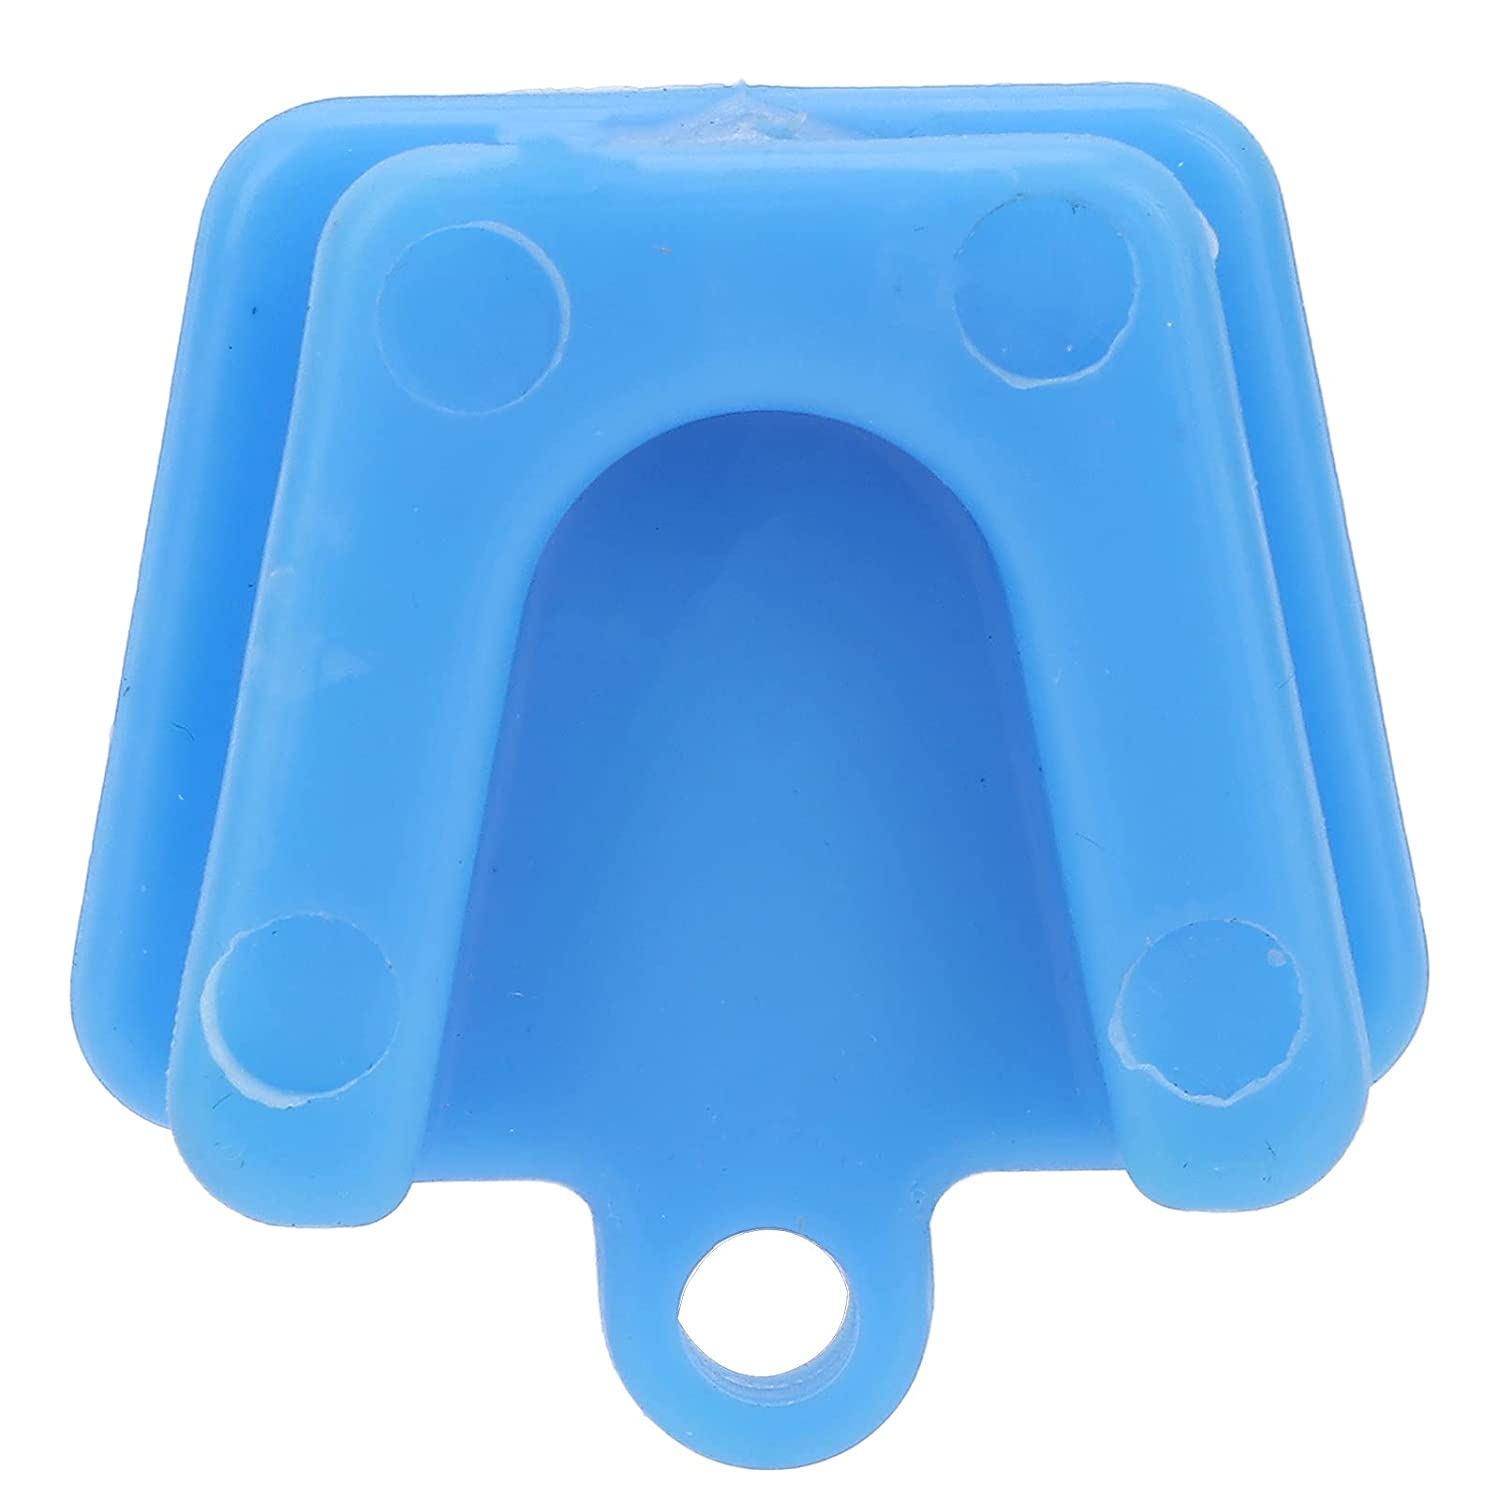 Mouth Prop Wholesale Bite Block and Eco‑friendly Inexpensive Safe Non‑toxic